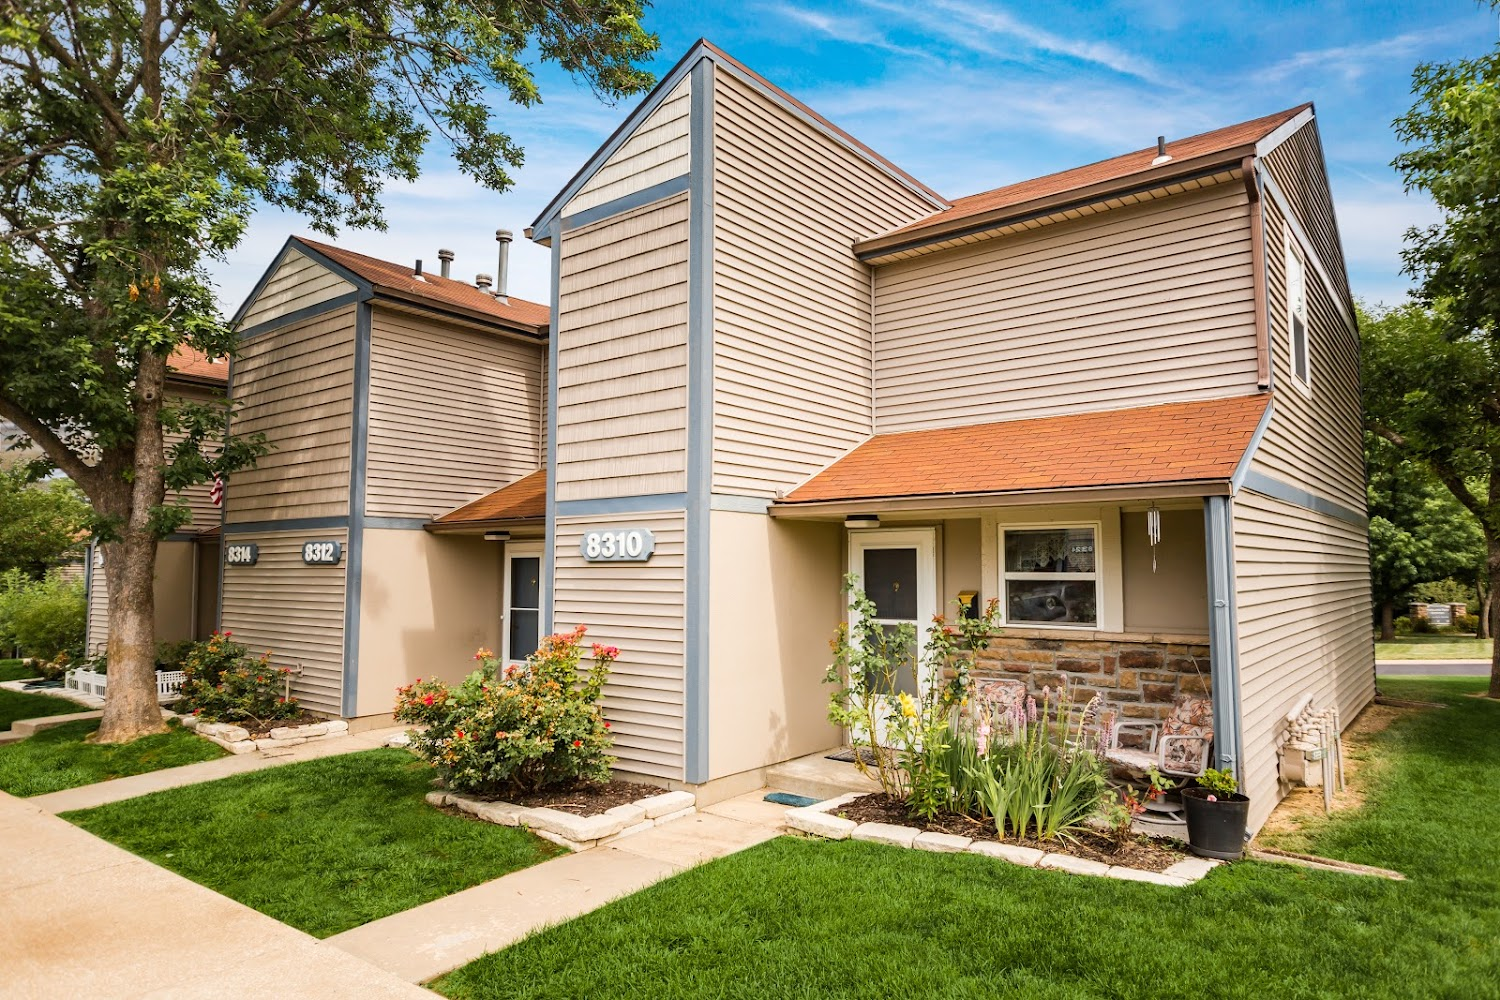 Amenities overland park estates in overland park ks - One bedroom apartments in overland park ks ...